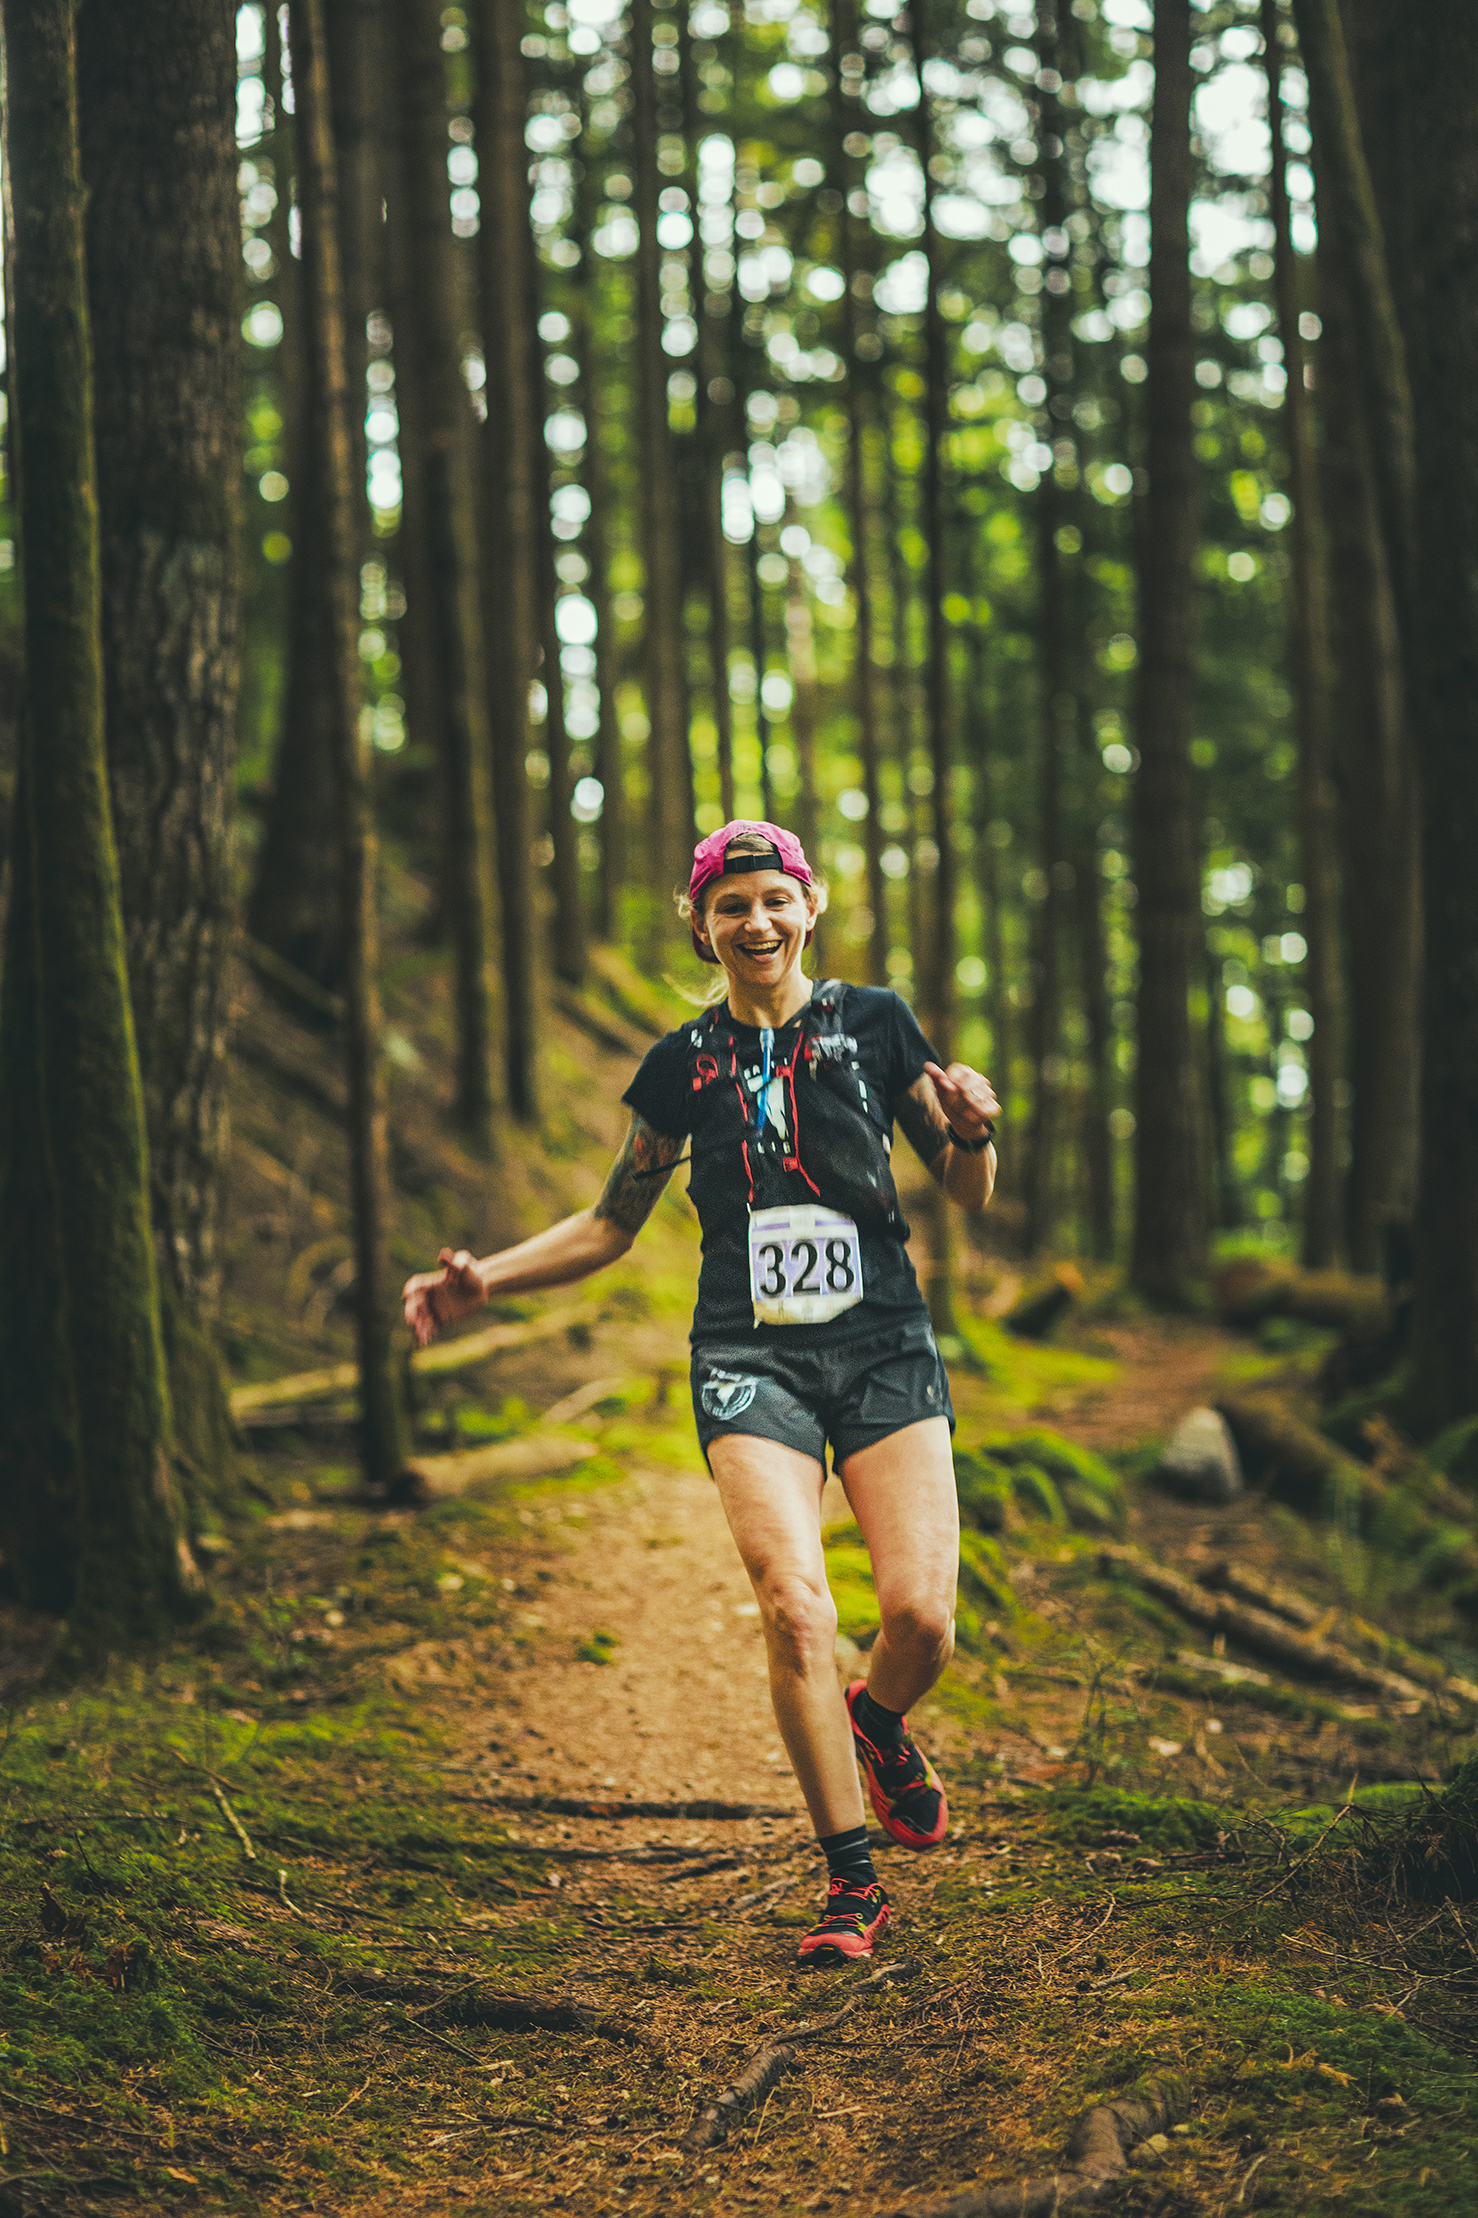 Fraser Valley Trail Races - Bear Mountain - IMG_2157 by Brice Ferre Studio - Vancouver Portrait Adventure and Athlete Photographer.jpg